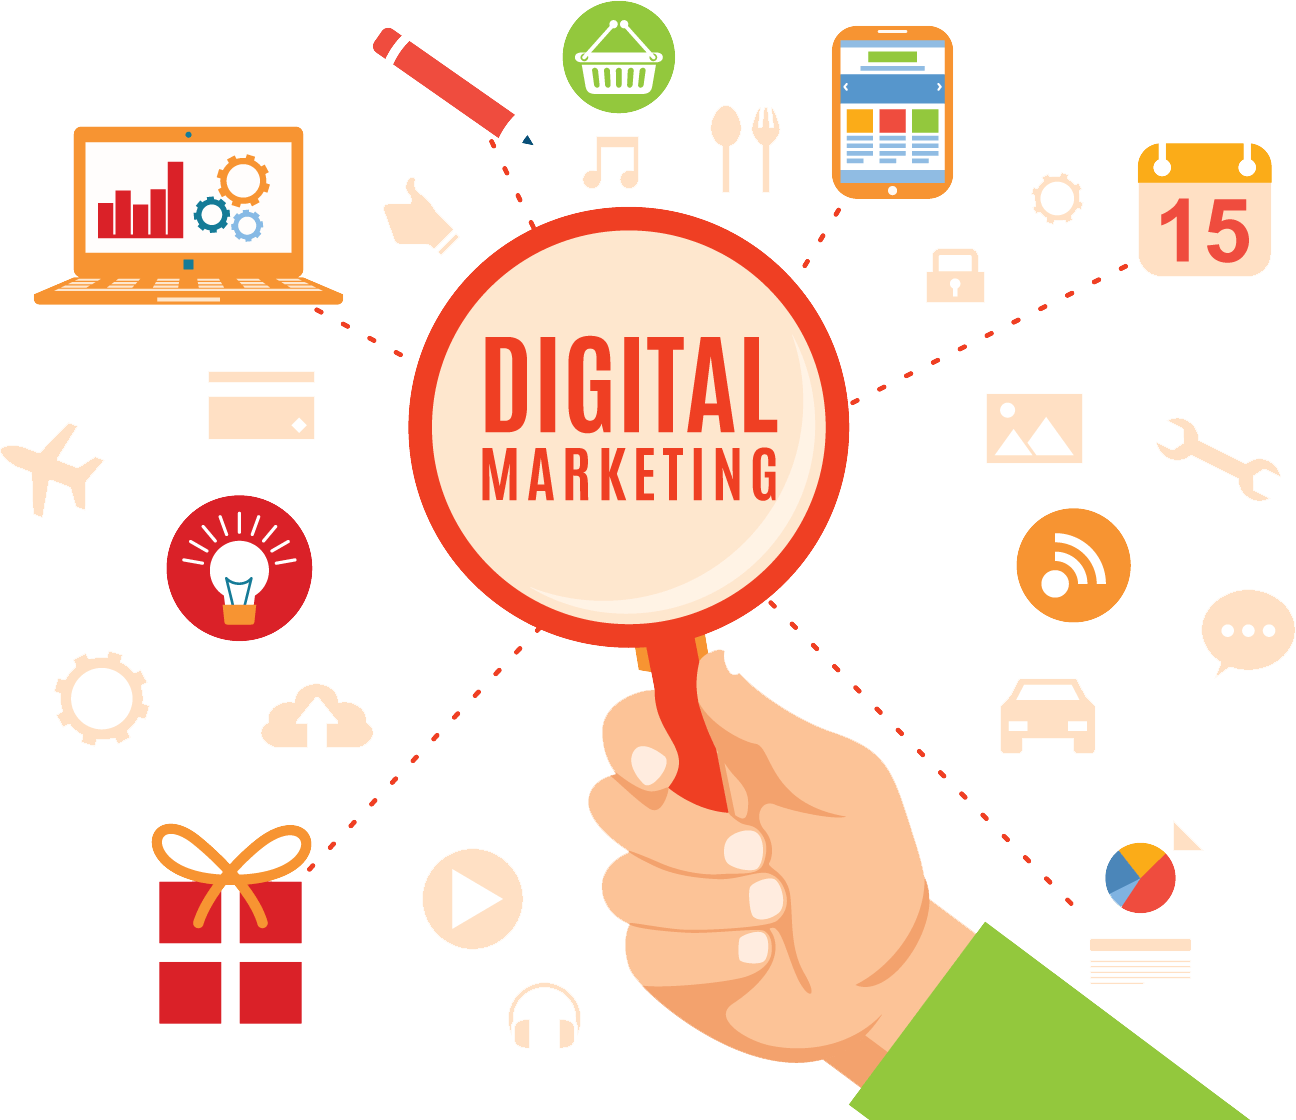 what-are-the-popular-digital-marketing-trends-to-follow-in-2019